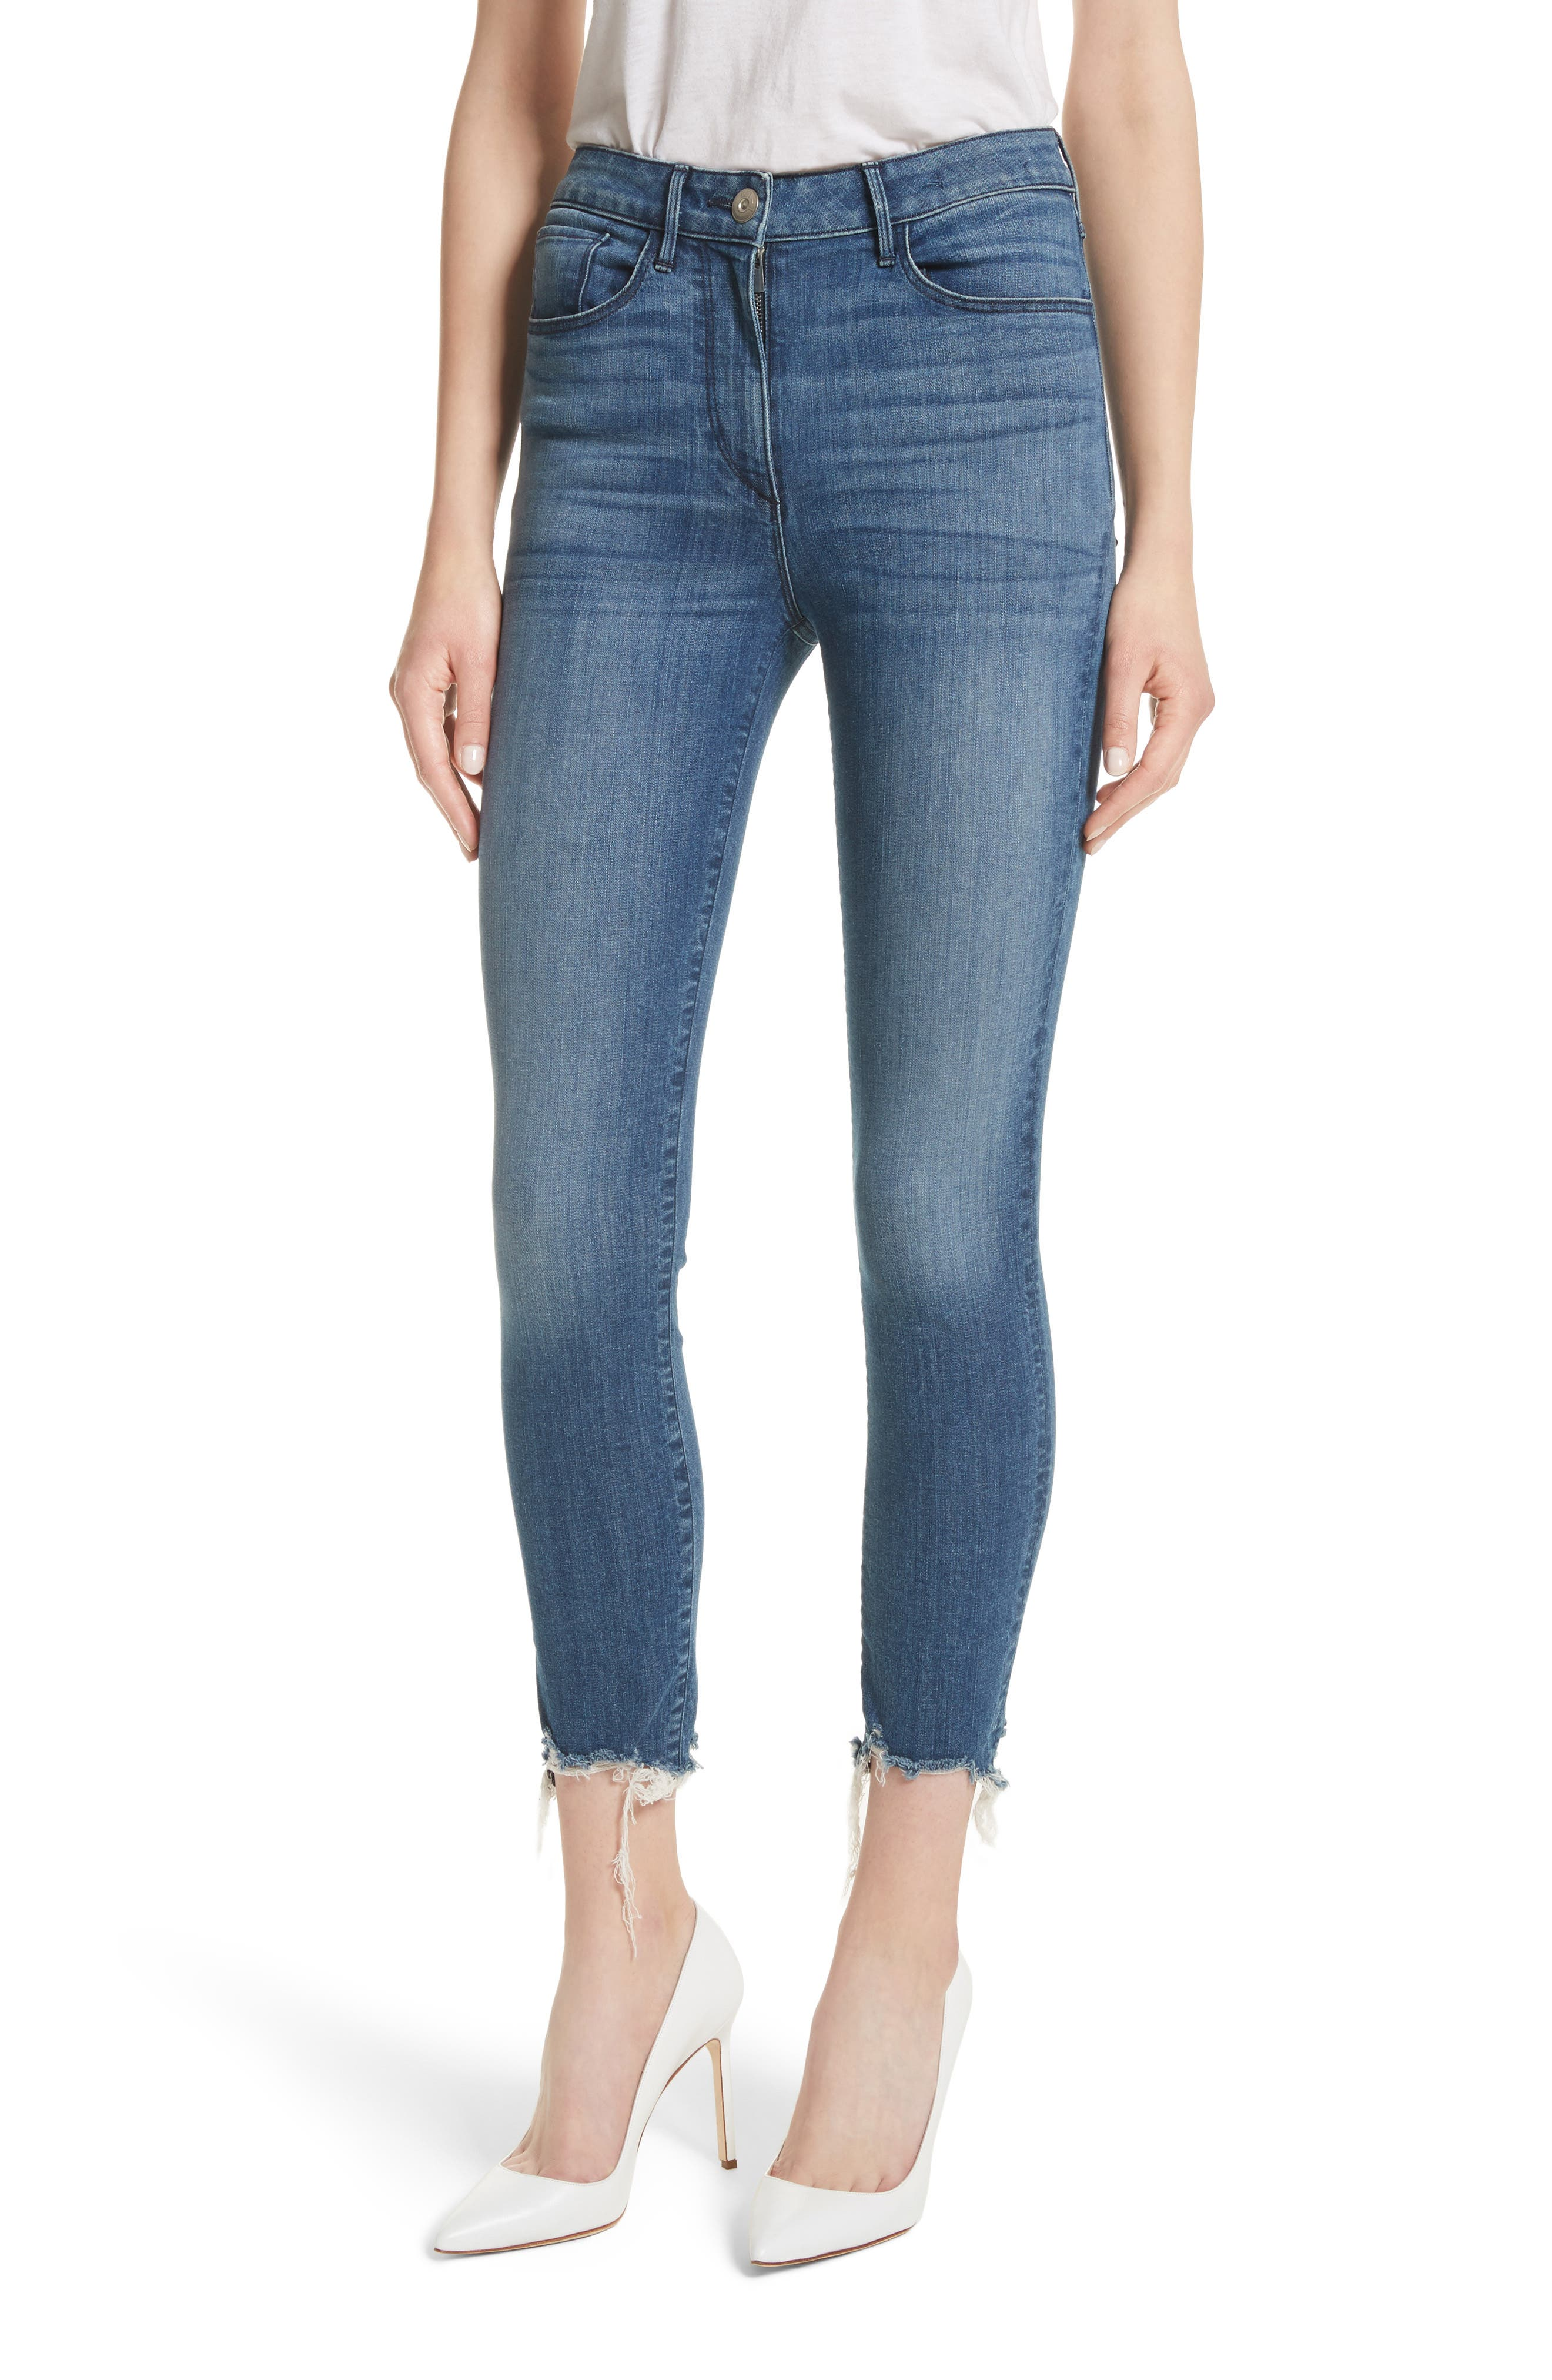 W3 Crop Skinny Jeans,                         Main,                         color, 428